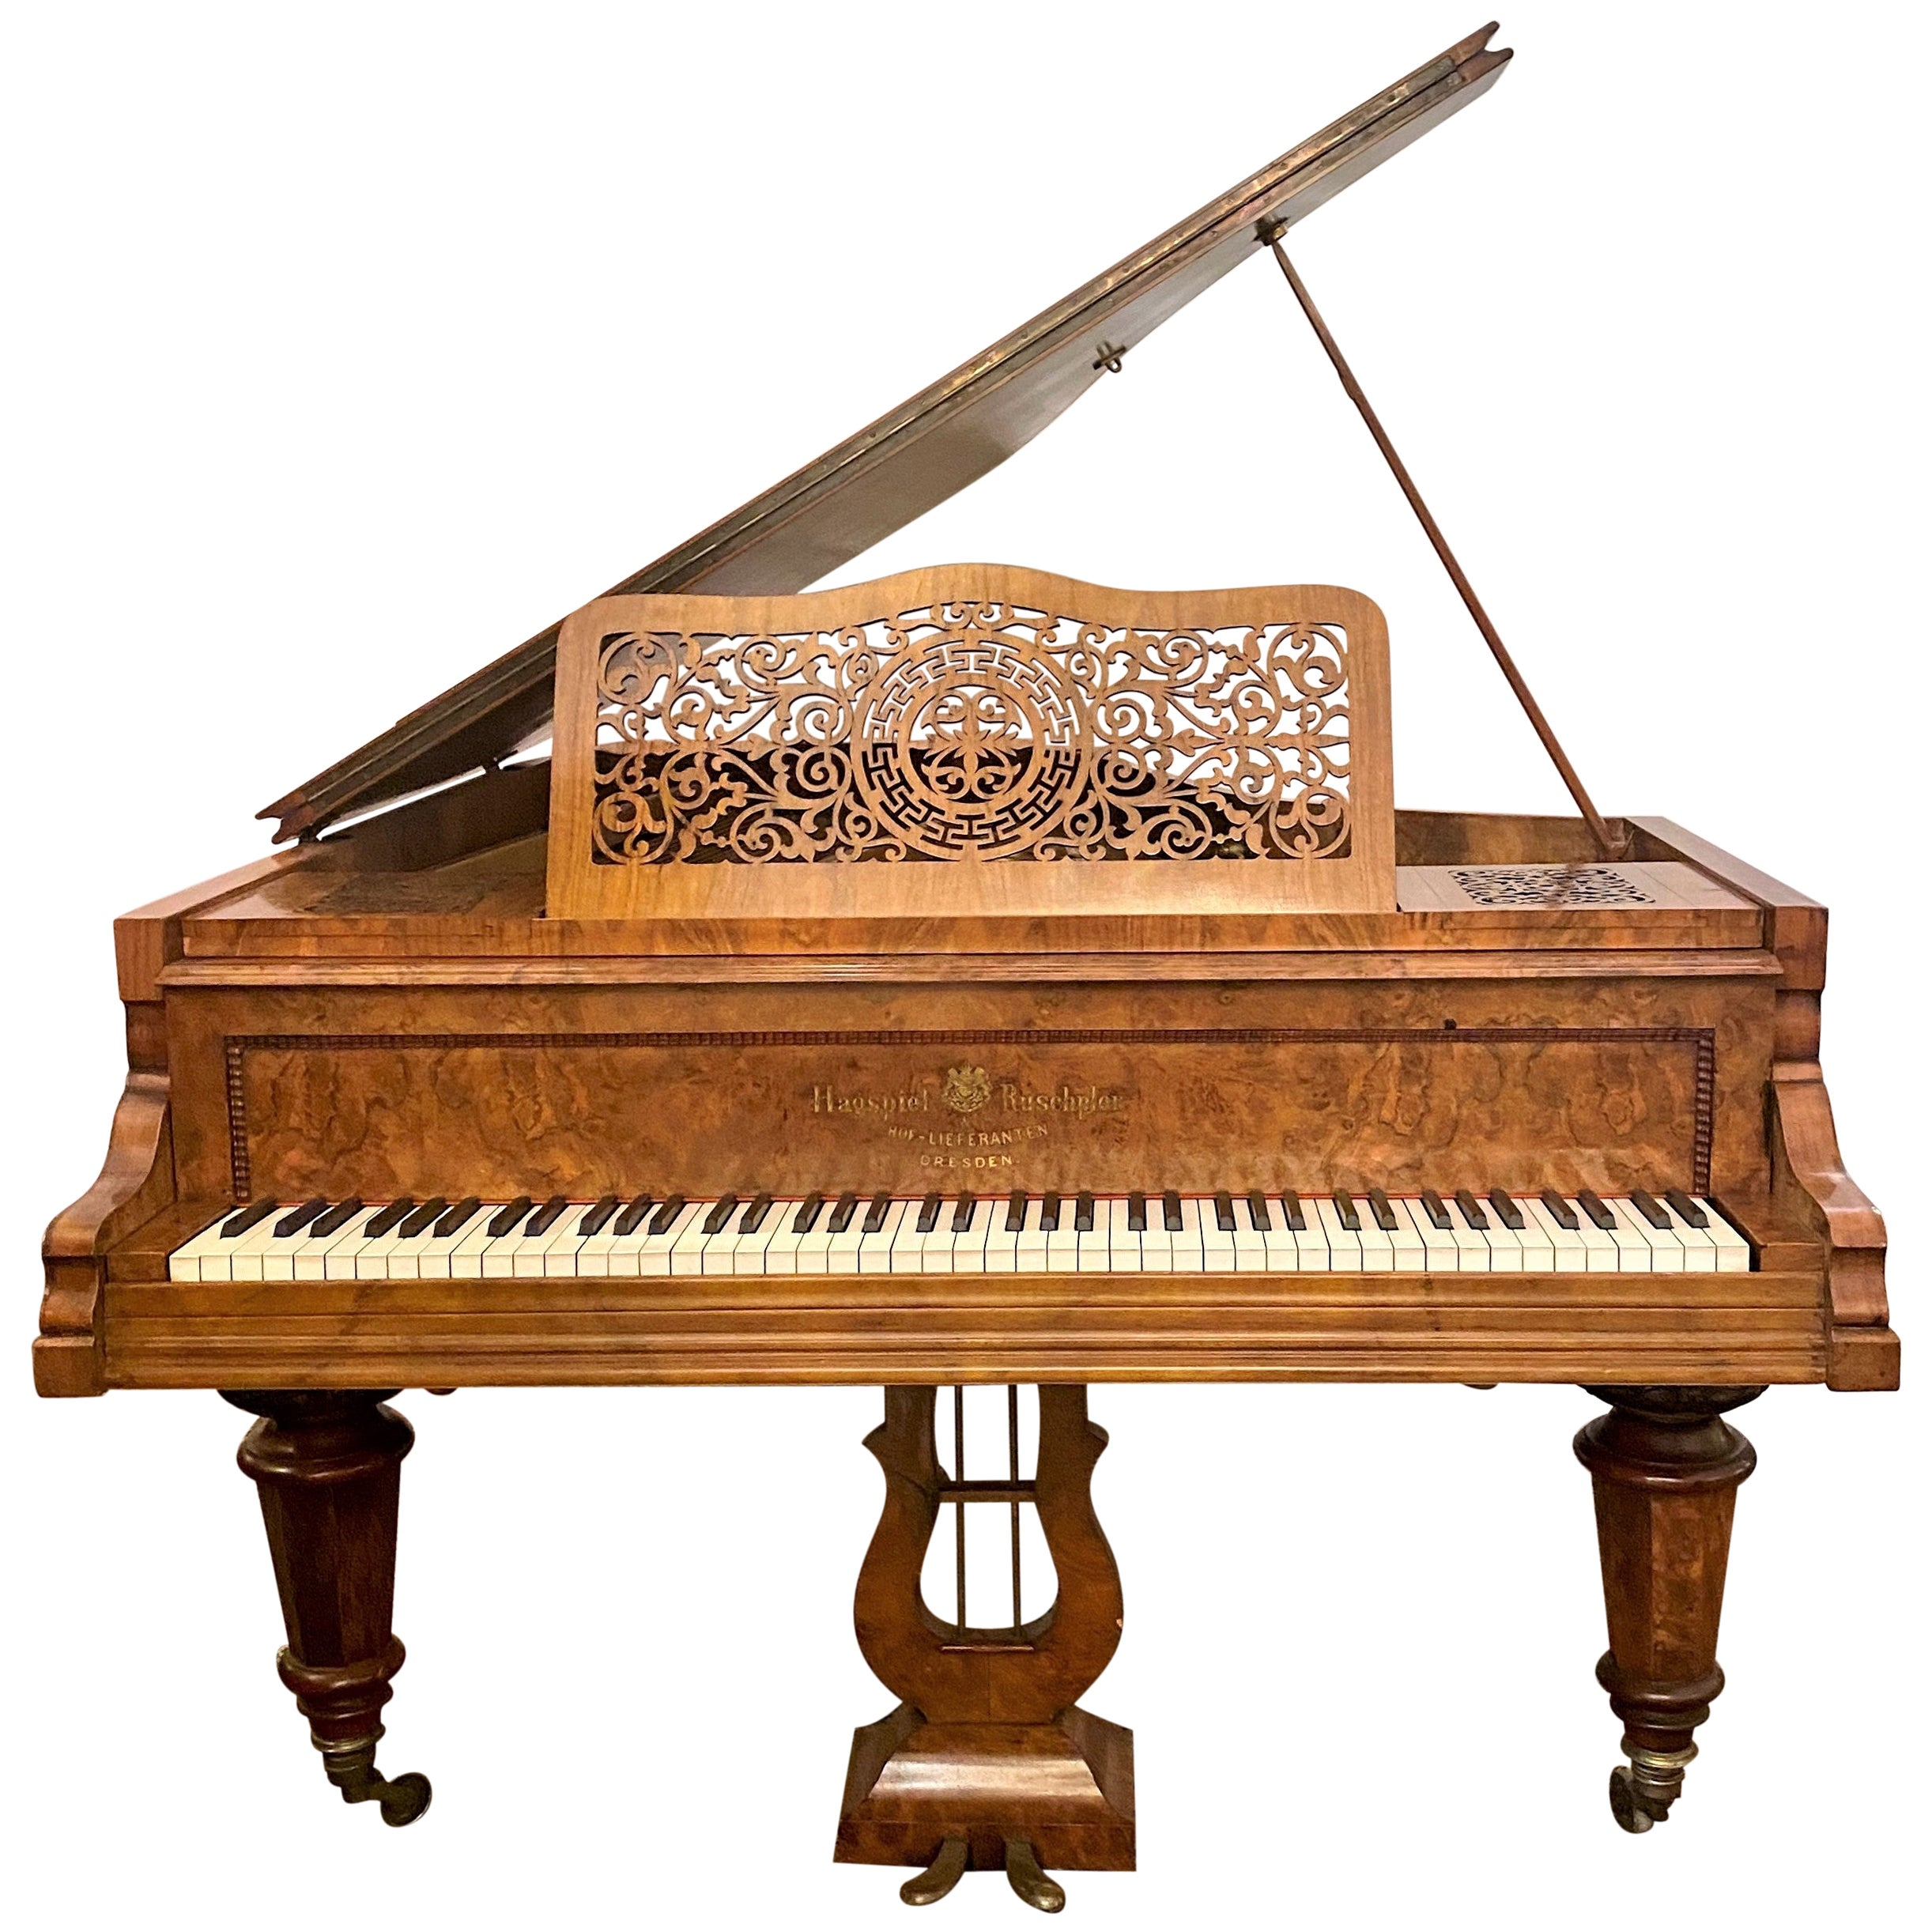 Antique Burled Walnut Parlor Grand Piano Made by Hagspiel & Ruschpler circa 1875